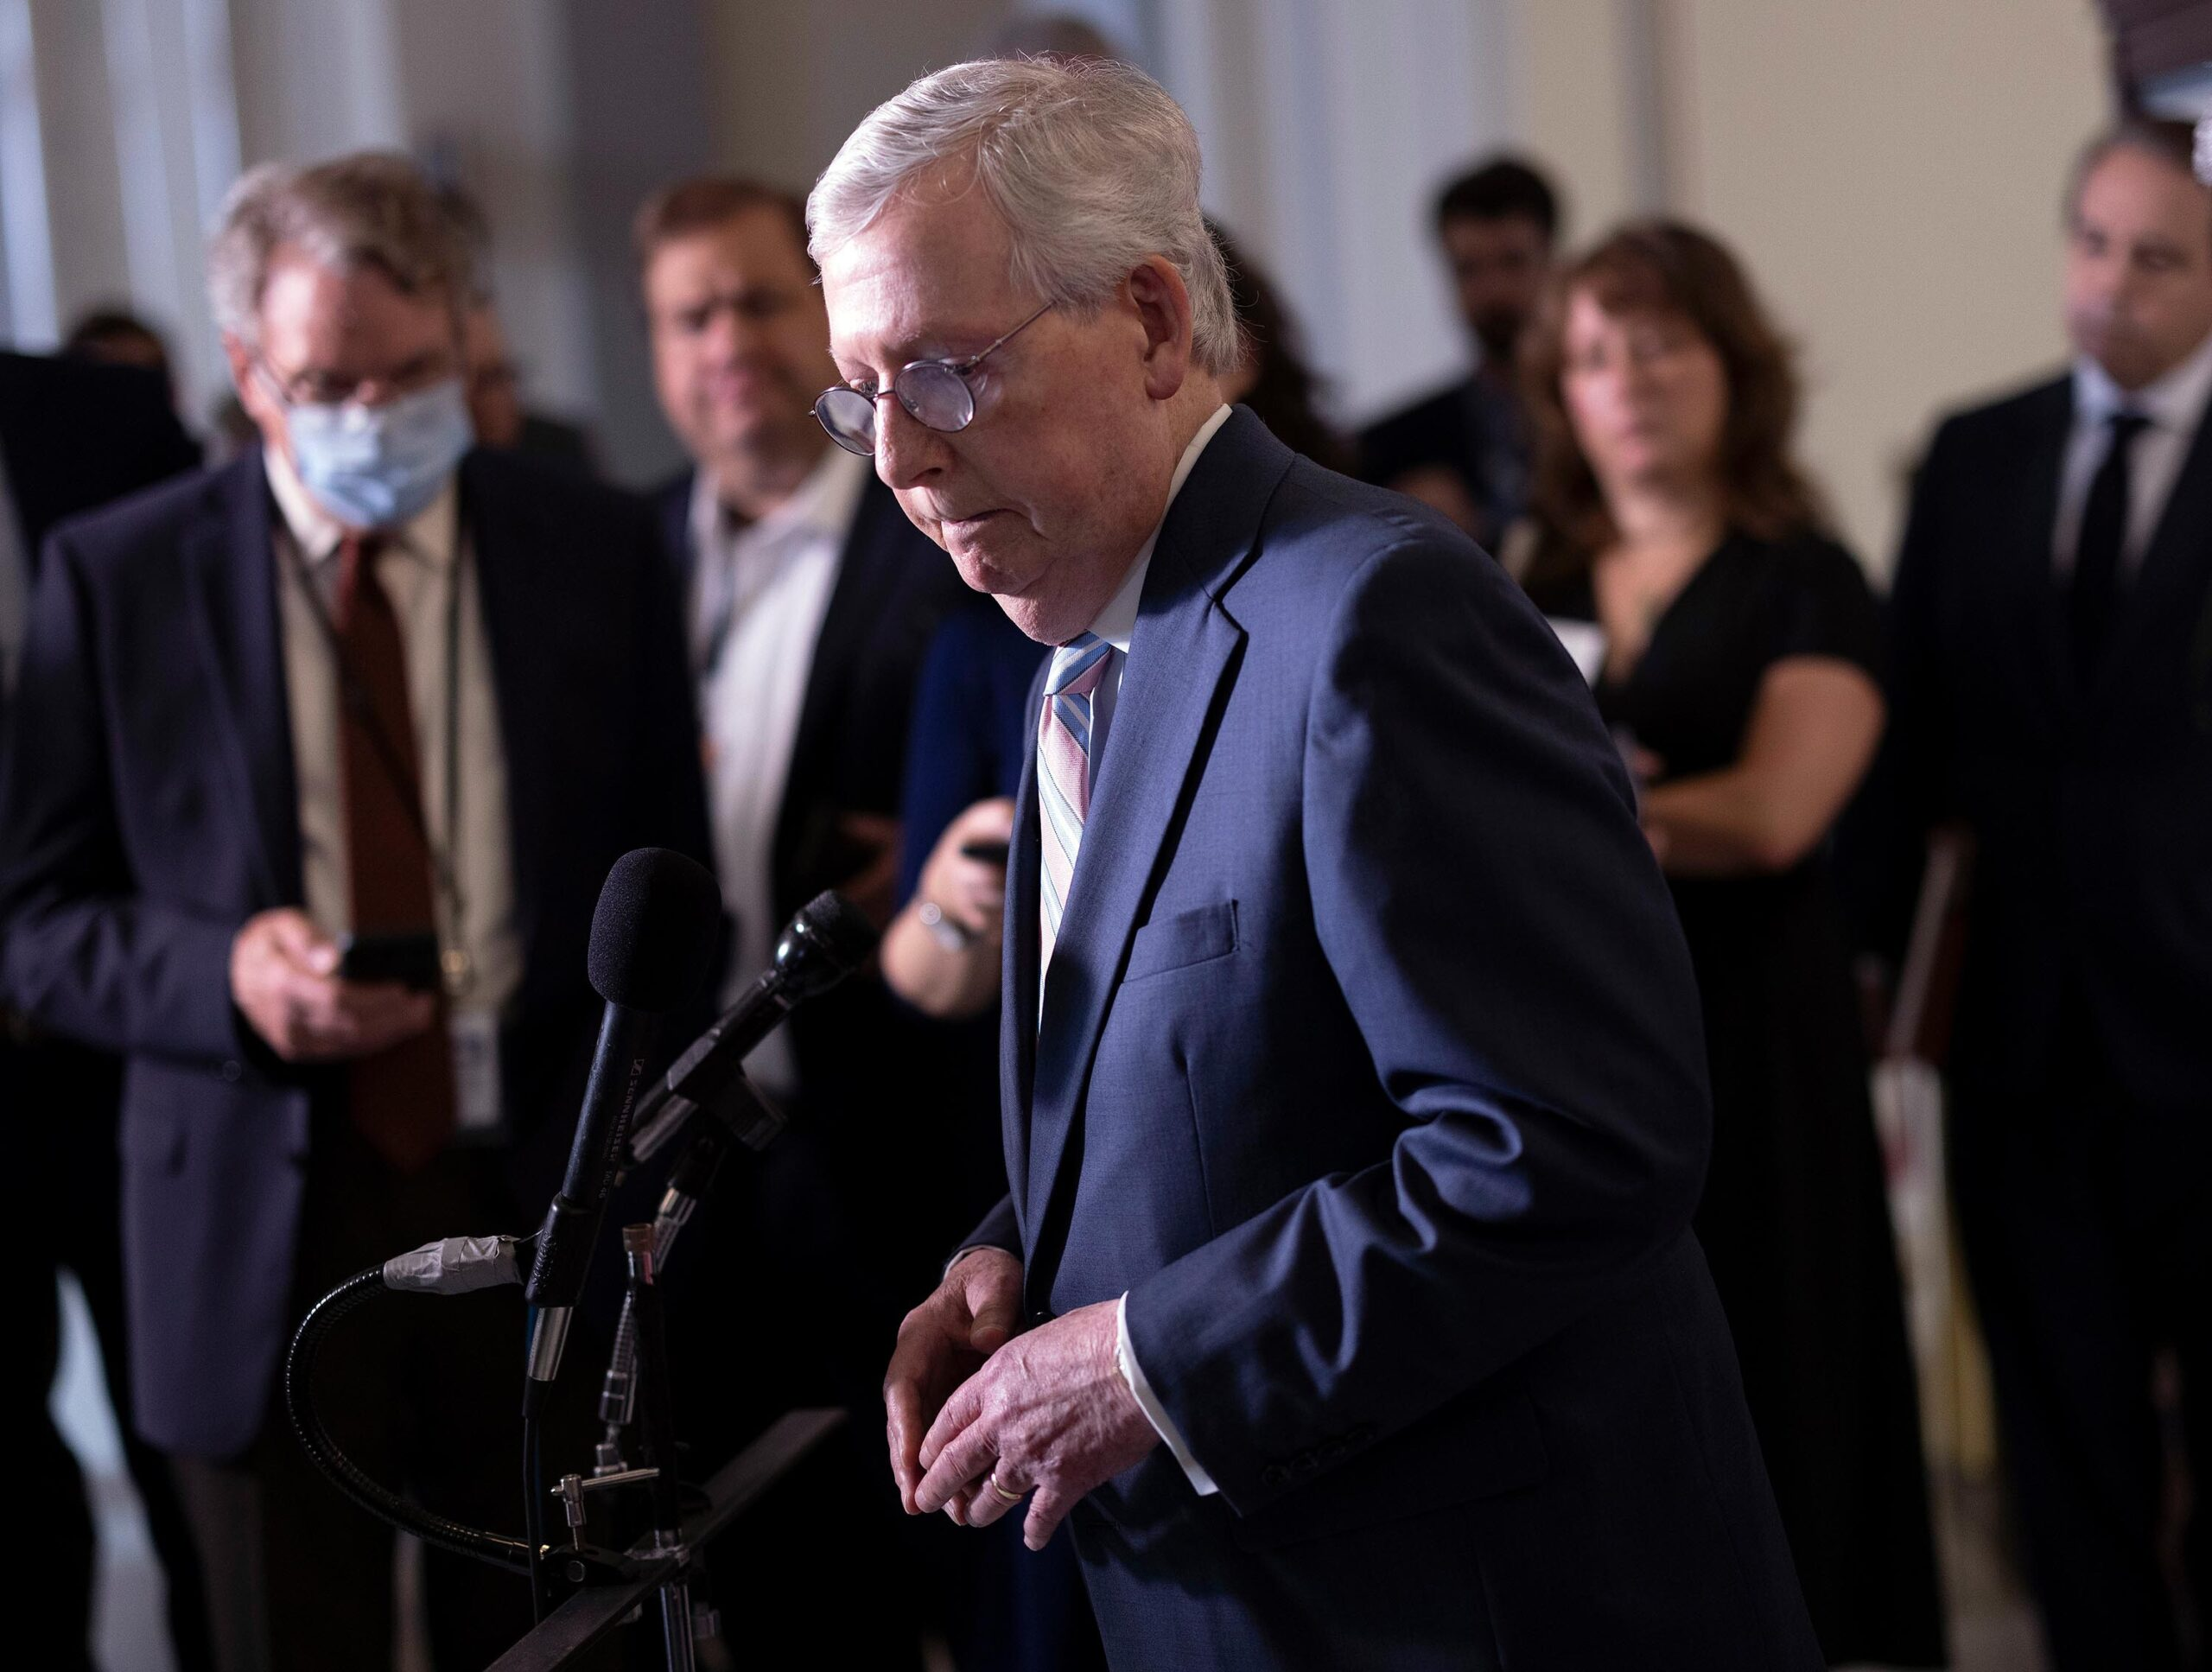 <i>Kevin Dietsch/Getty Images</i><br/>Senate Republican Leader Mitch McConnell is taking his coronavirus vaccine plea directly to his constituents.